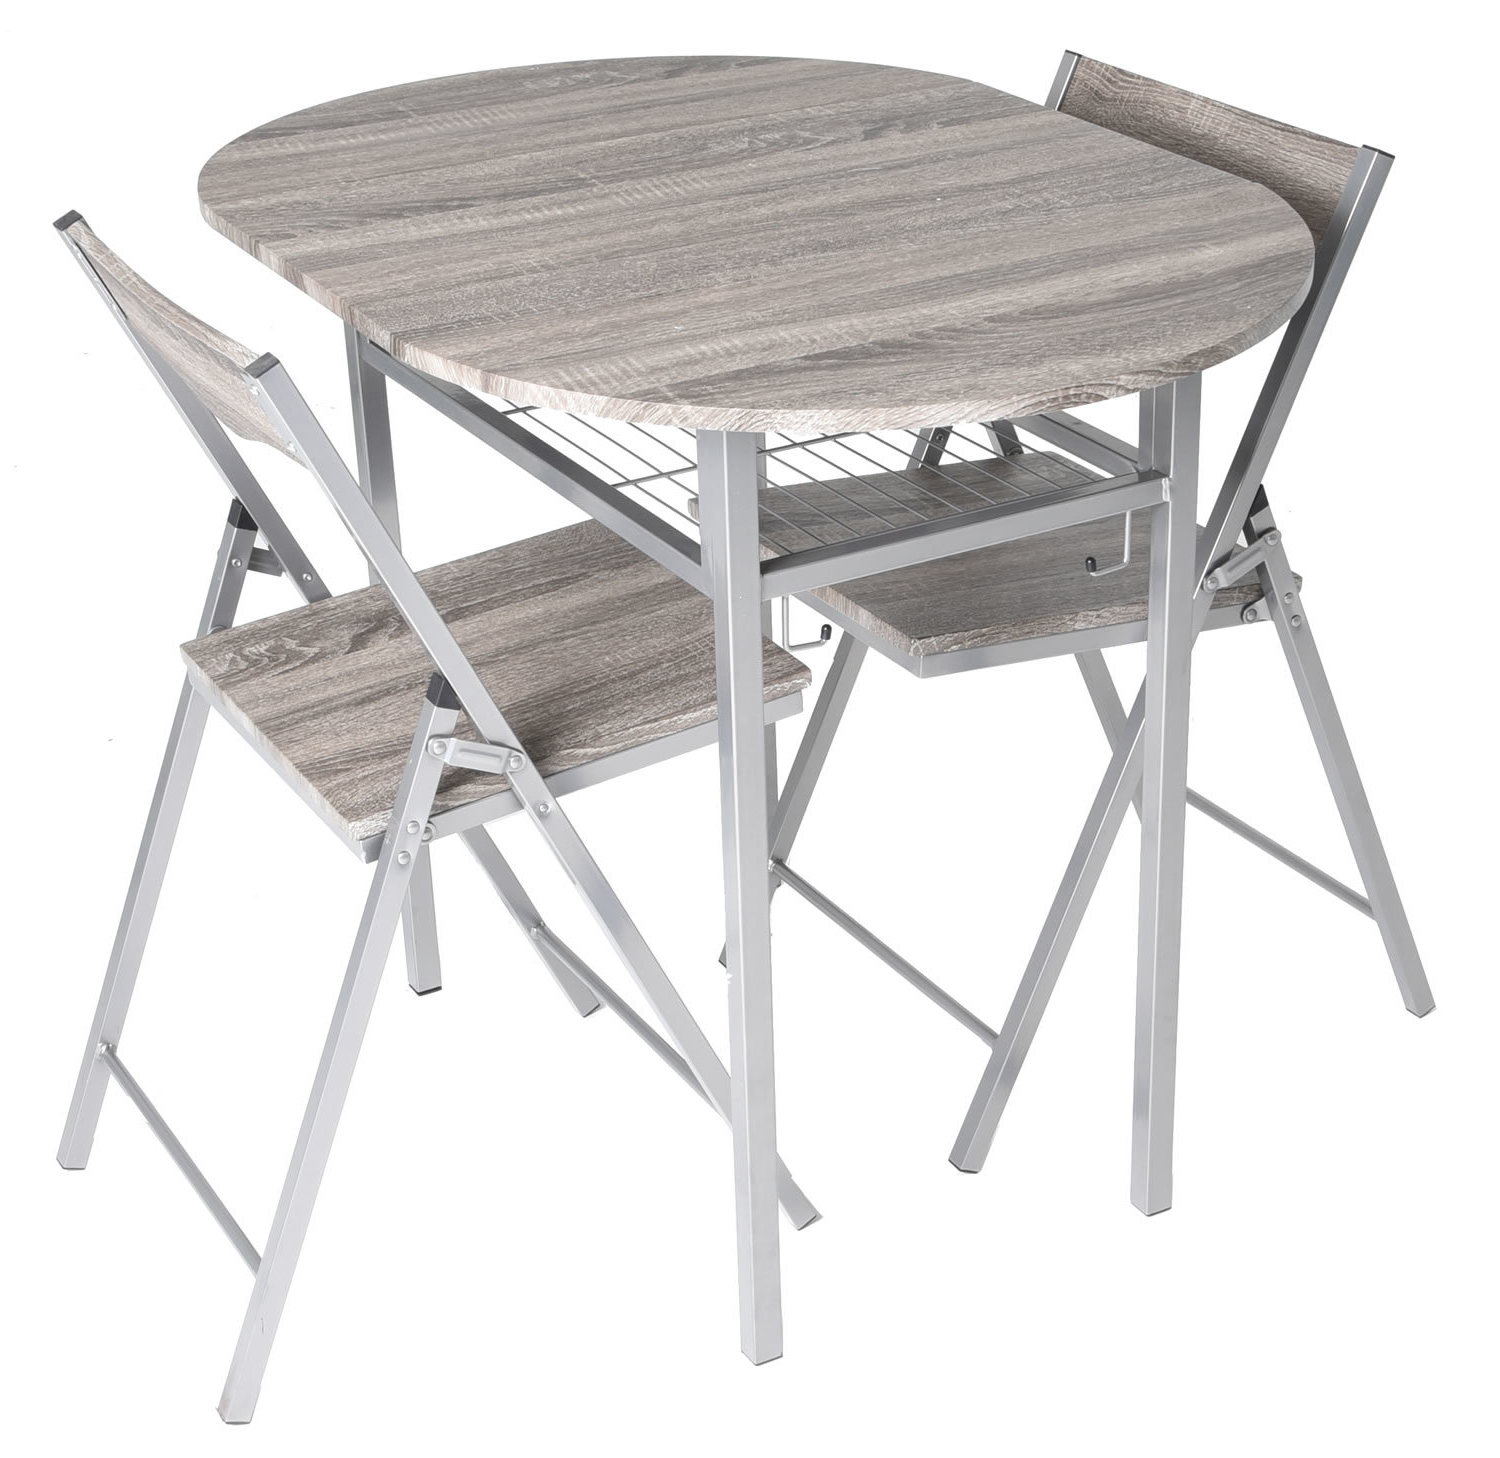 Preferred Horner Wood 3 Piece Drop Leaf Breakfast Nook Dining Set Within Honoria 3 Piece Dining Sets (View 3 of 20)